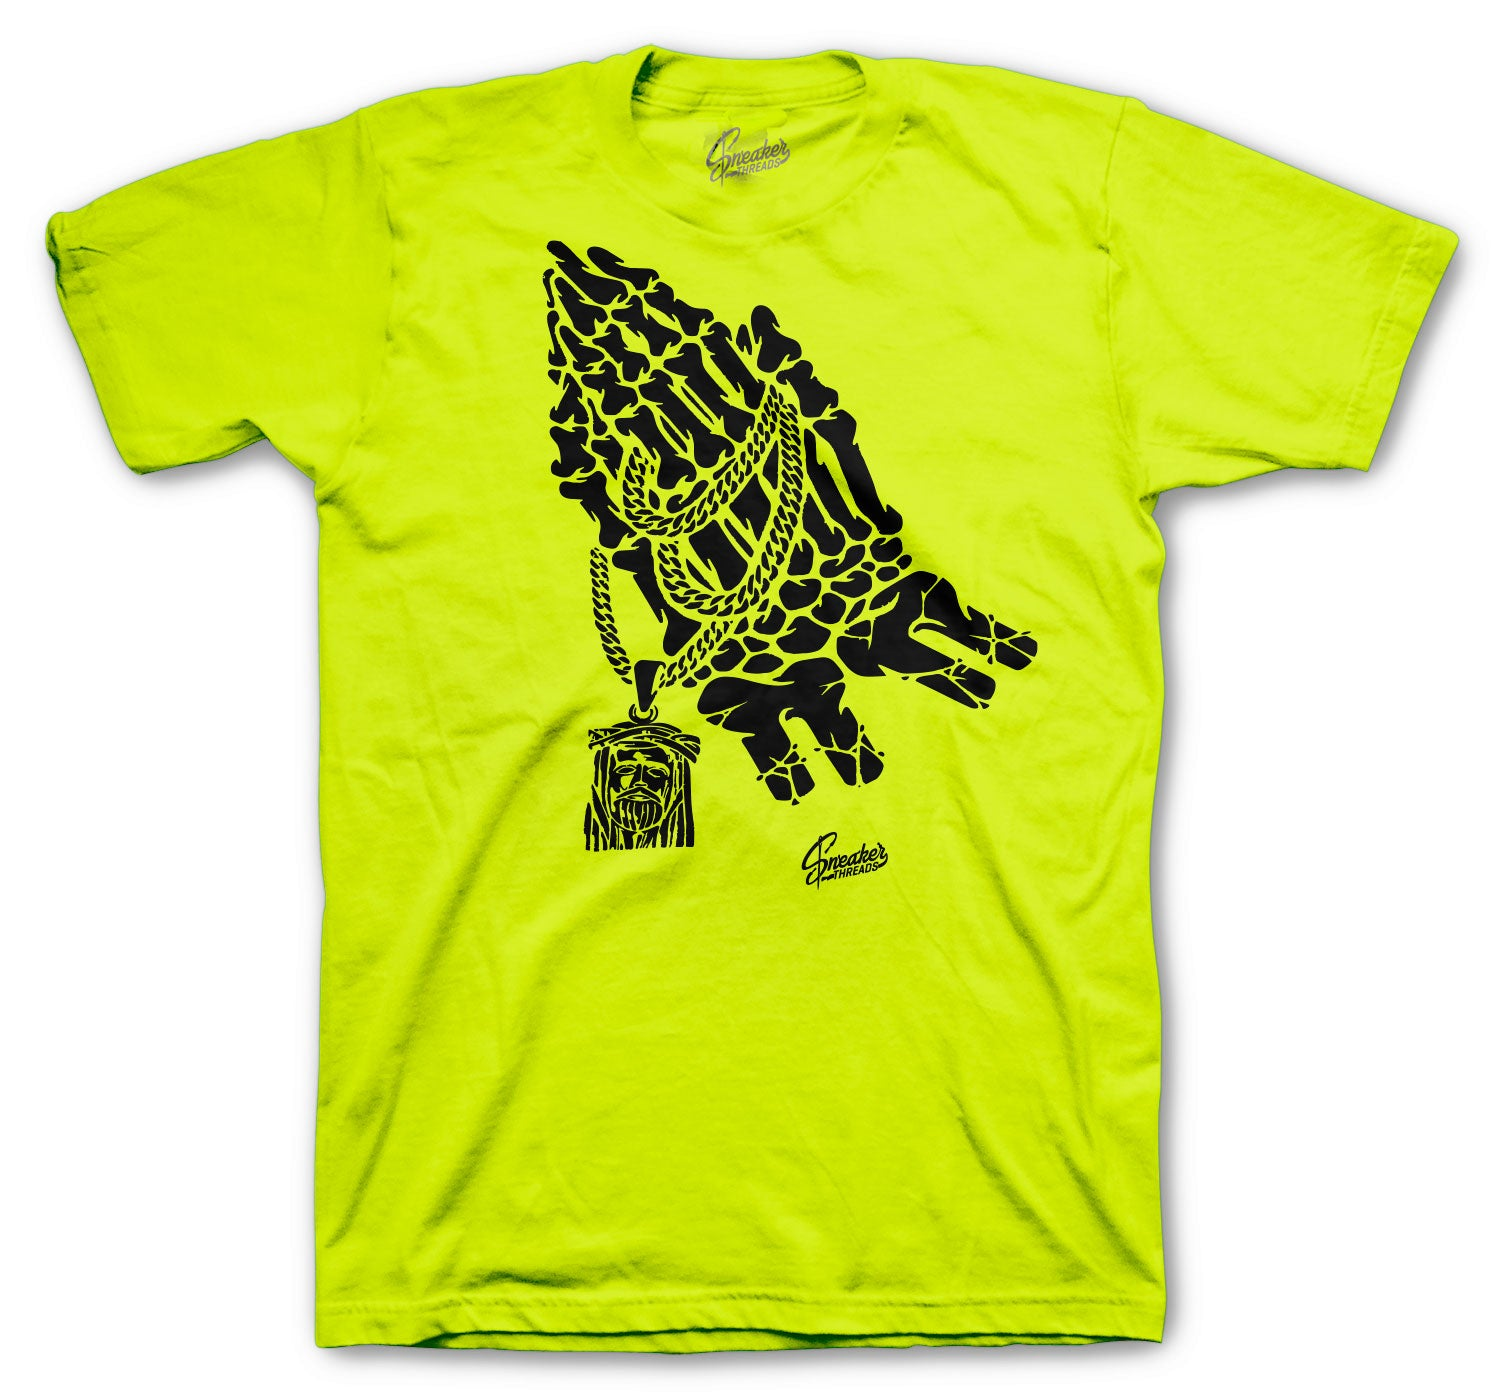 Foamposite Volt Pray Shirt